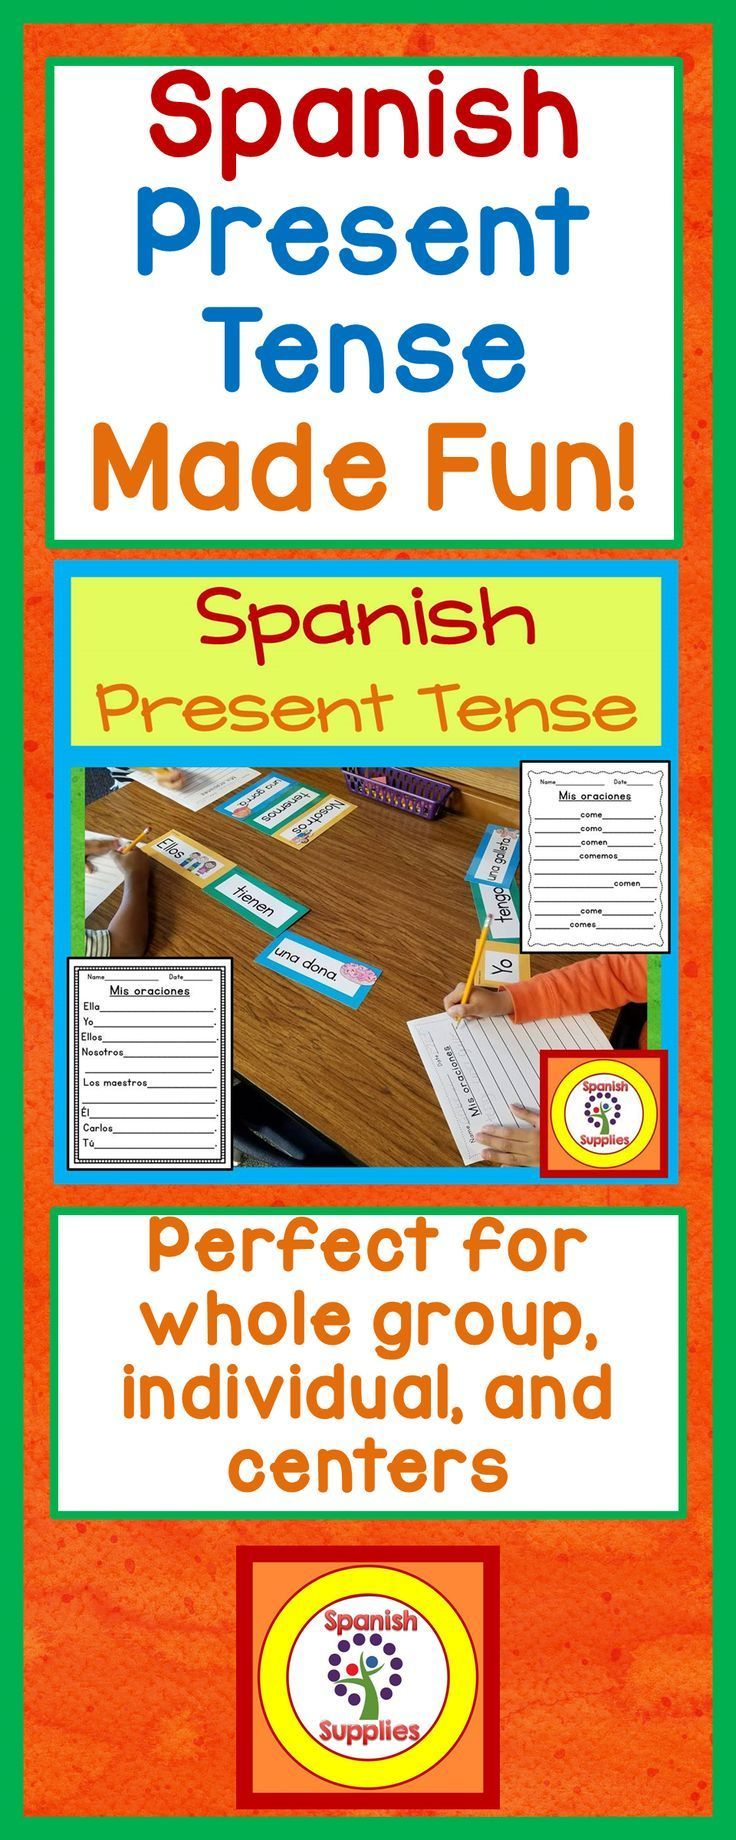 Present Spanish verb agreement activity. Perfect for TFL and dual language classrooms. For whole group, individual, and center work. Worksheets are included for extra practice and assessment.